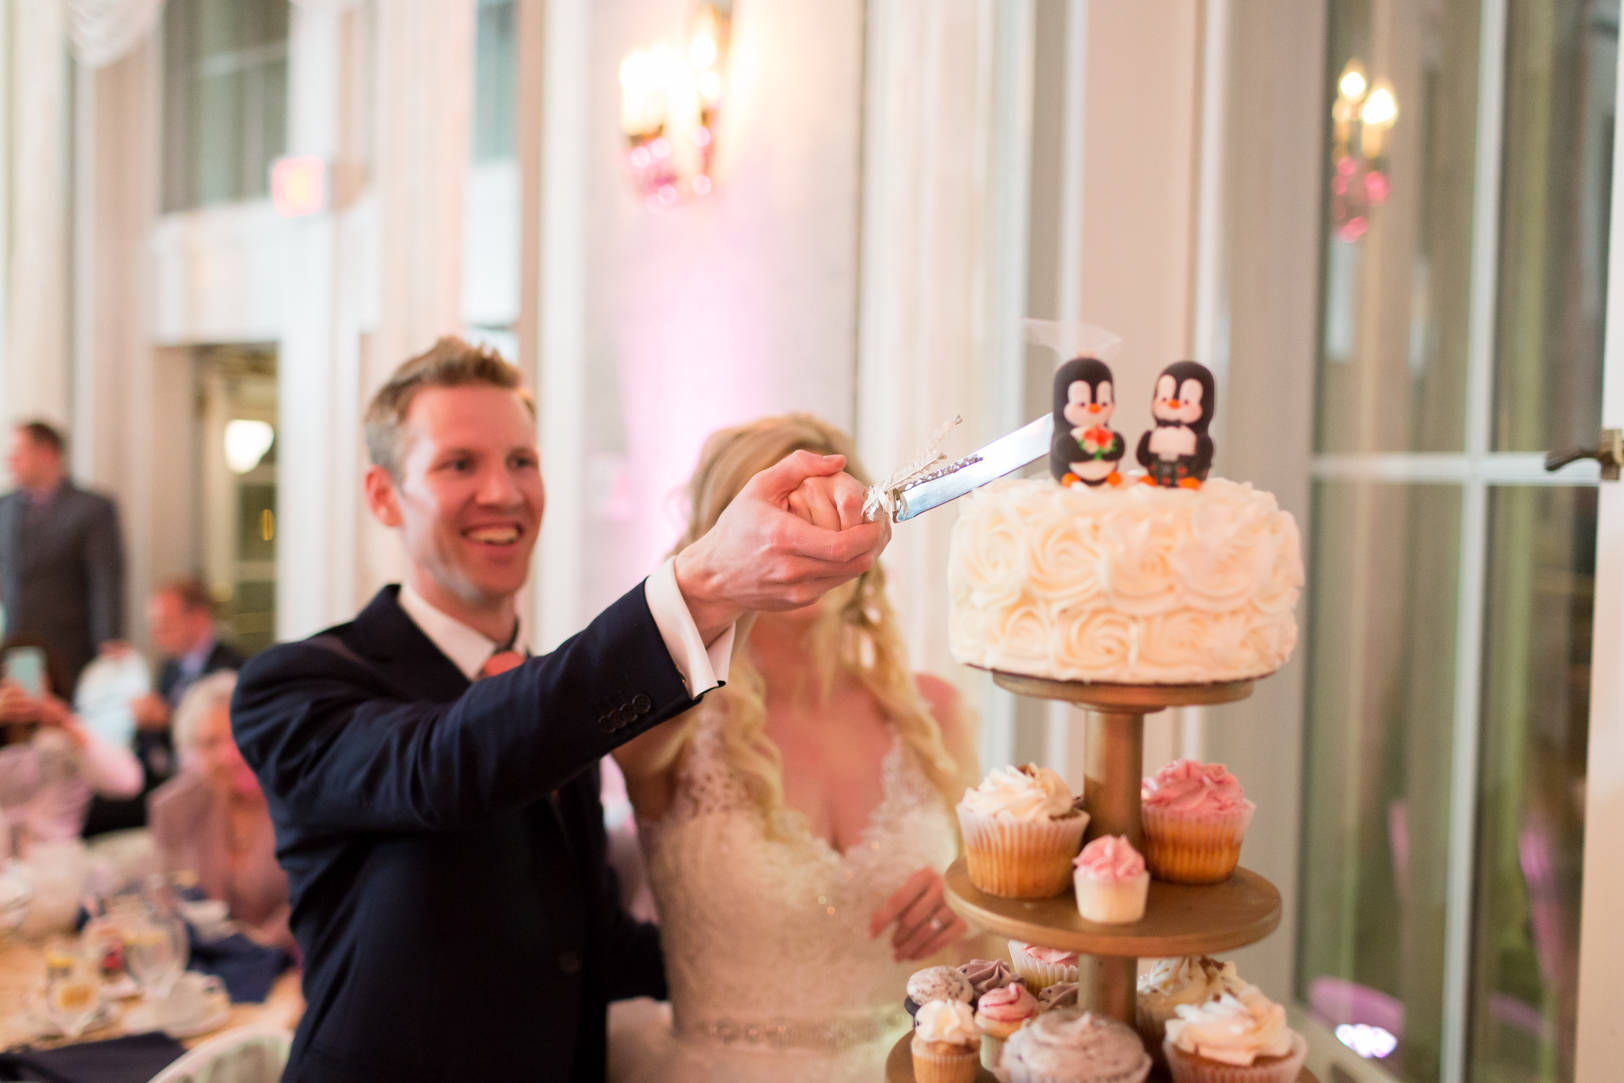 creative cake cutting photo